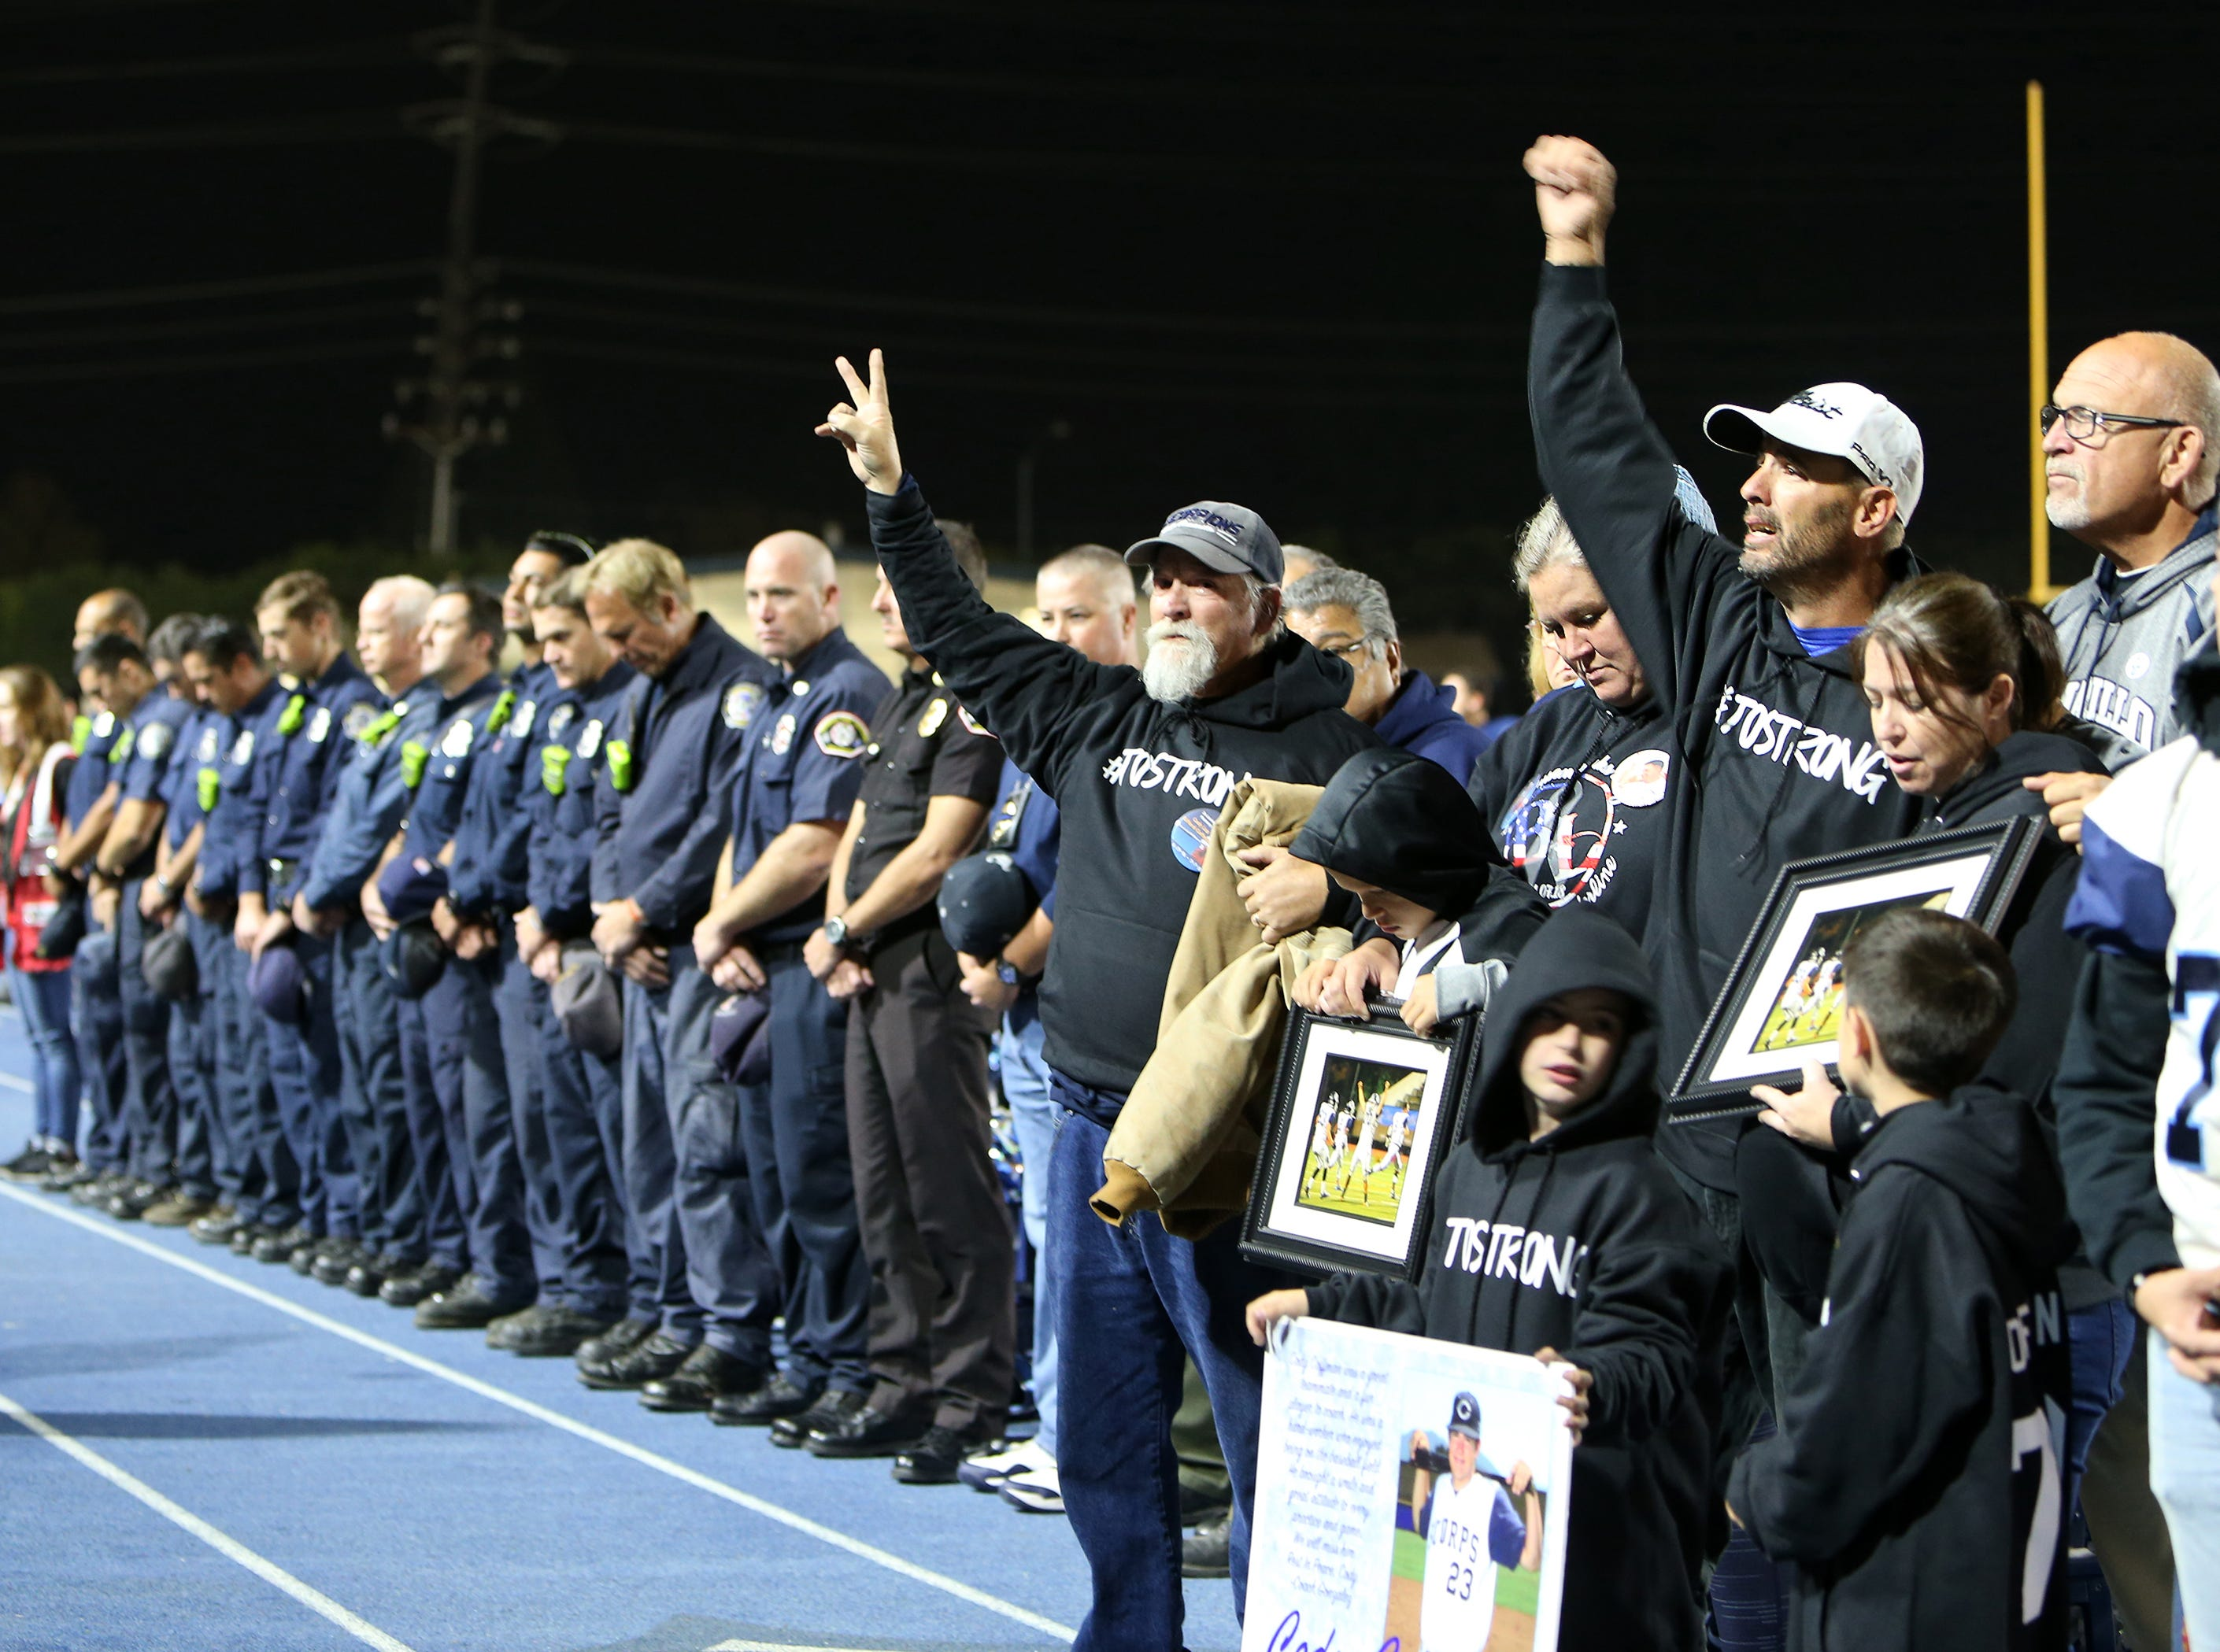 Cody Gifford-Coffman's grandfather Jerry Coffman, left, and his father Jason Coffman acknowledge the crowd before the start of Camarillo High's playoff game against Corona Del Mar on Friday night. The Ventura County Fire Department was also honored for its service fighting the fires that devastated Ventura County last week.